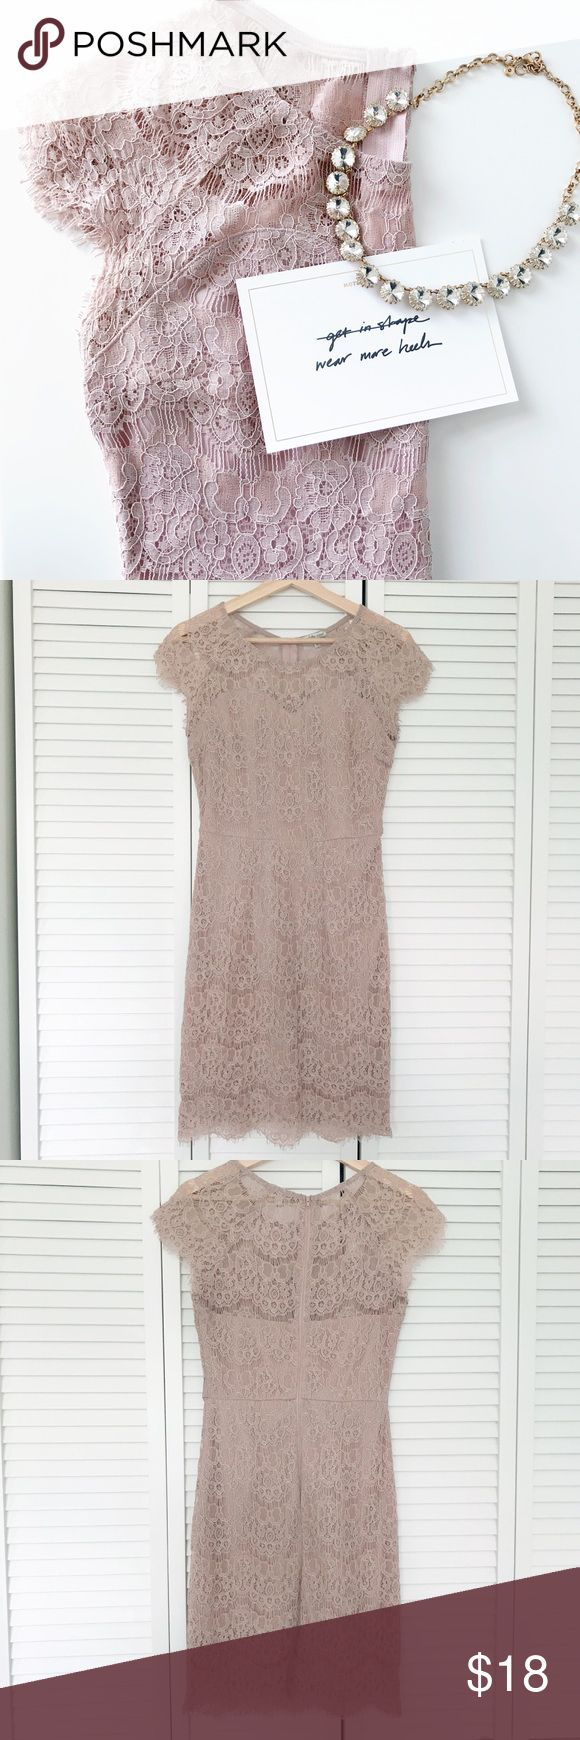 """Blush Lace Dress EUC blush lace dress from Charlotte Russe. It has been worn once for an event. The tag shows some stain from rubbing on a hanger. No other flaws noted. The dress is an x-small and is lined. There is a zipper on the back. Length is 35"""". Charlotte Russe Dresses Mini"""